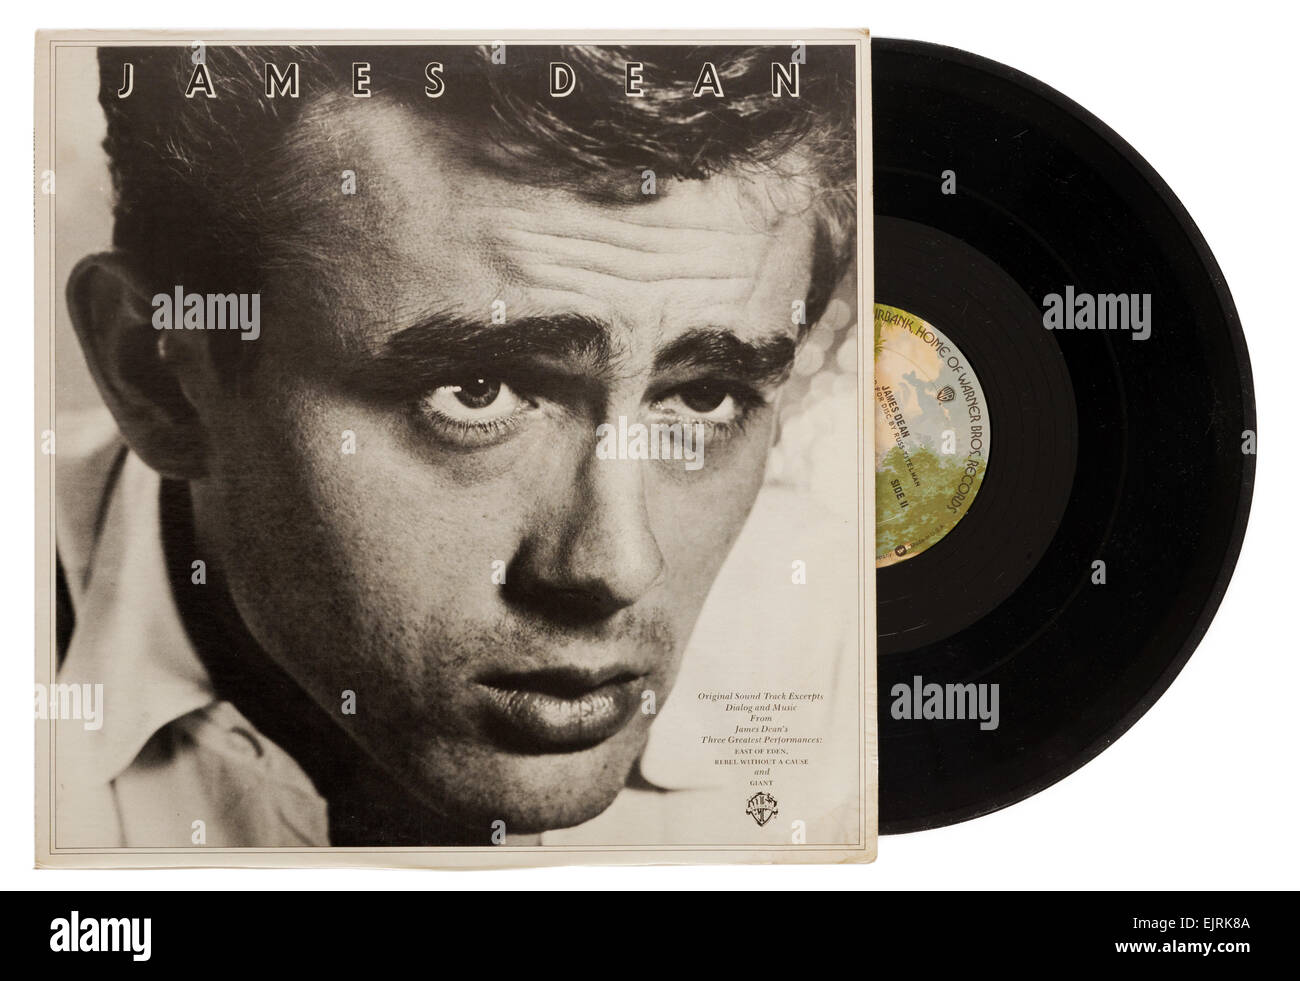 James Dean-Album des Dialogs und der Musik von East Of Eden und Rebel Without a Cause Stockbild